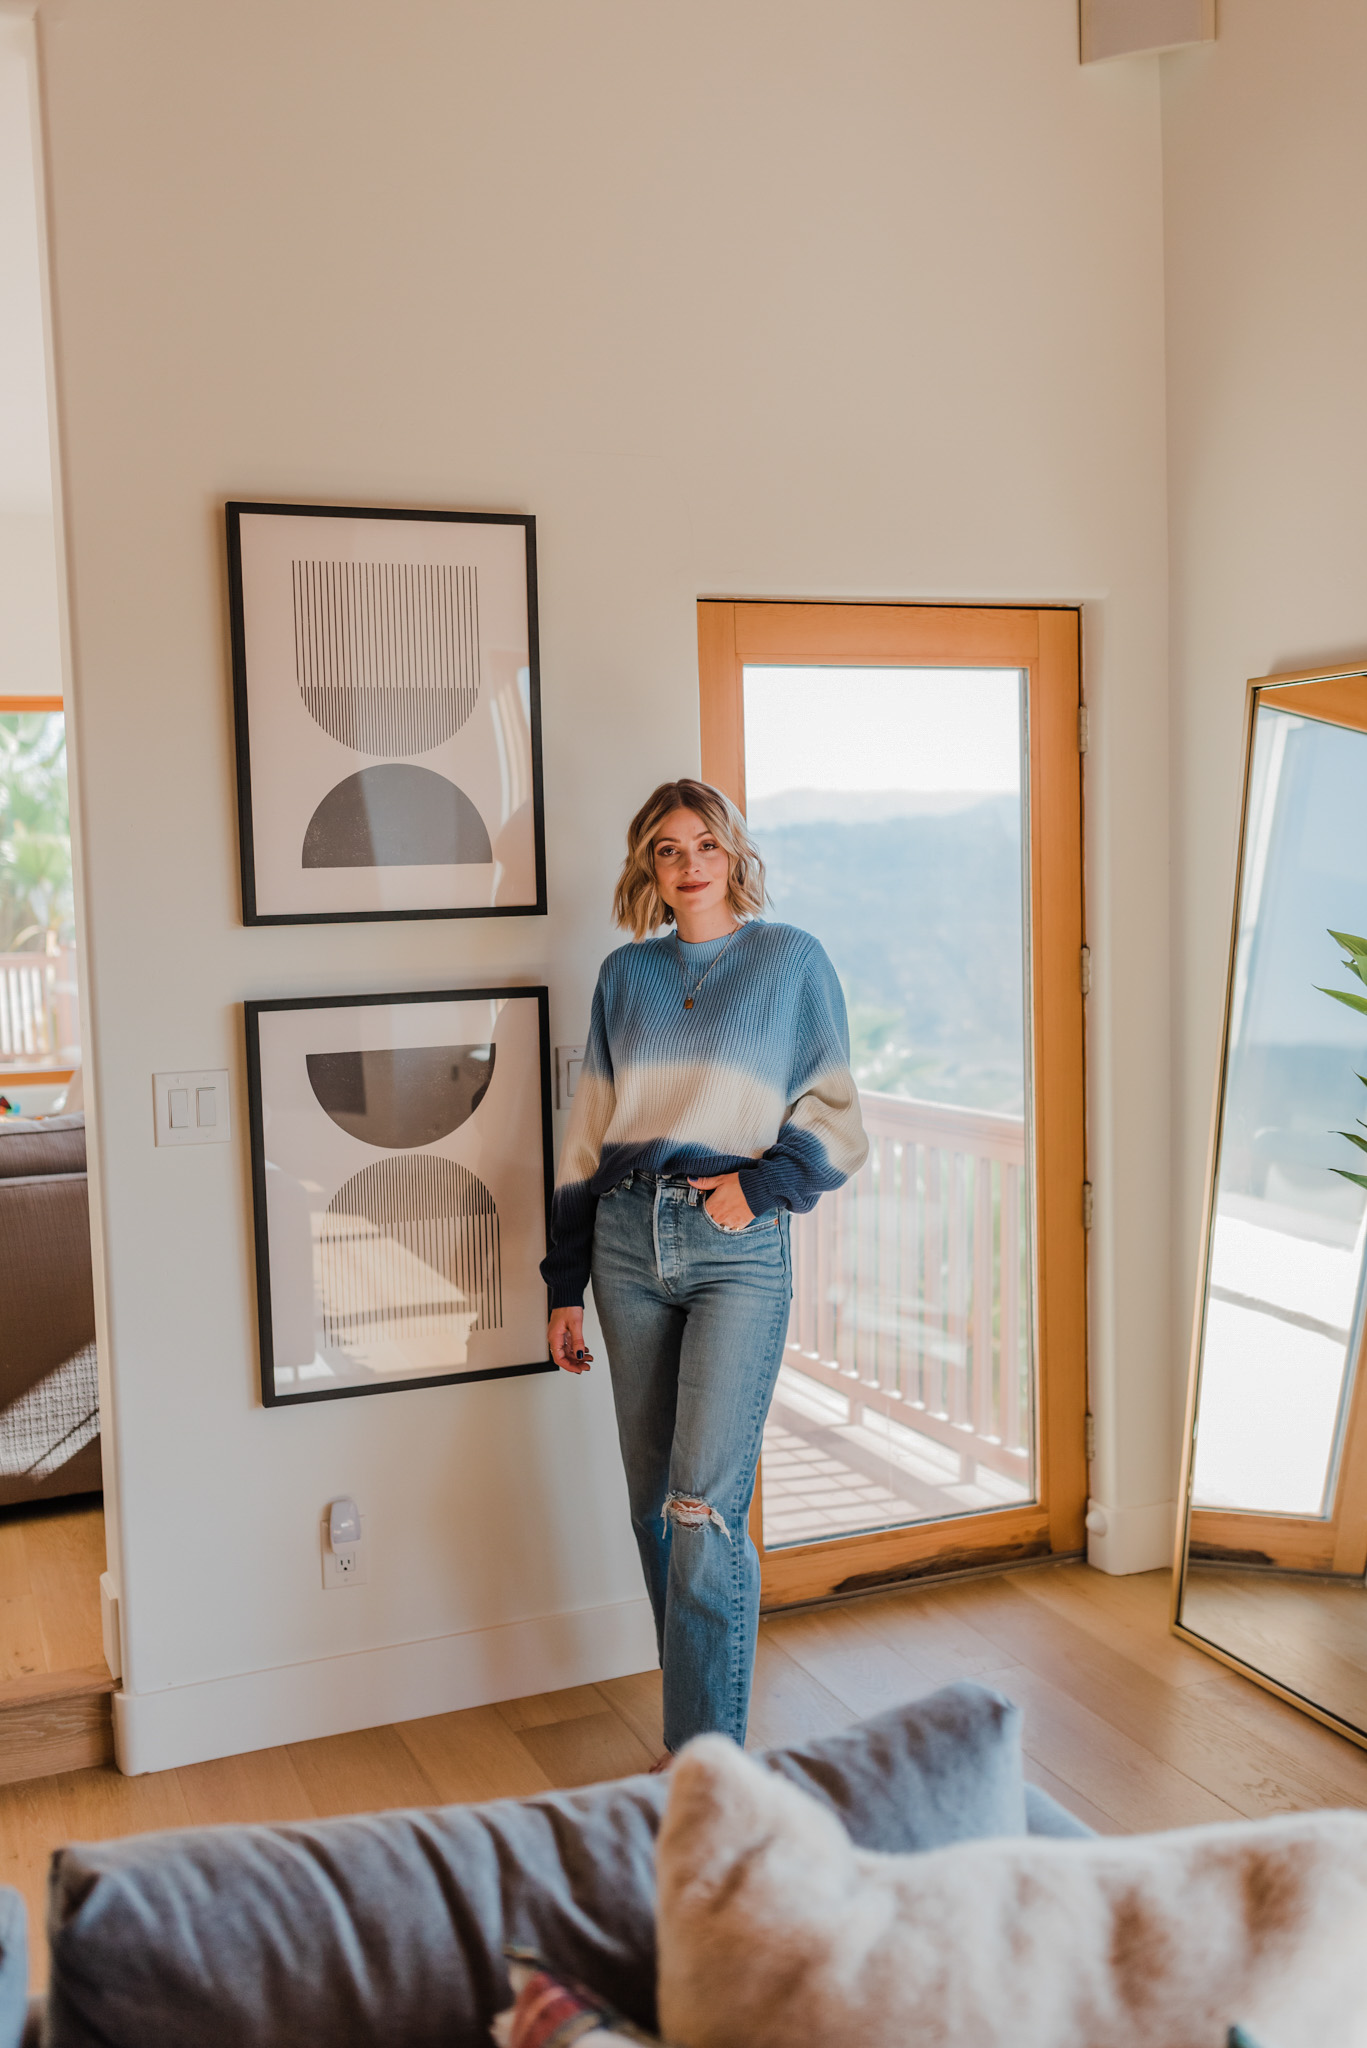 Minted Art by popular life and style blog, Navy Grace: image of a woman standing next to two framed Etsy Mid century style woodblock print in classic geometric shapes and neutral colors.